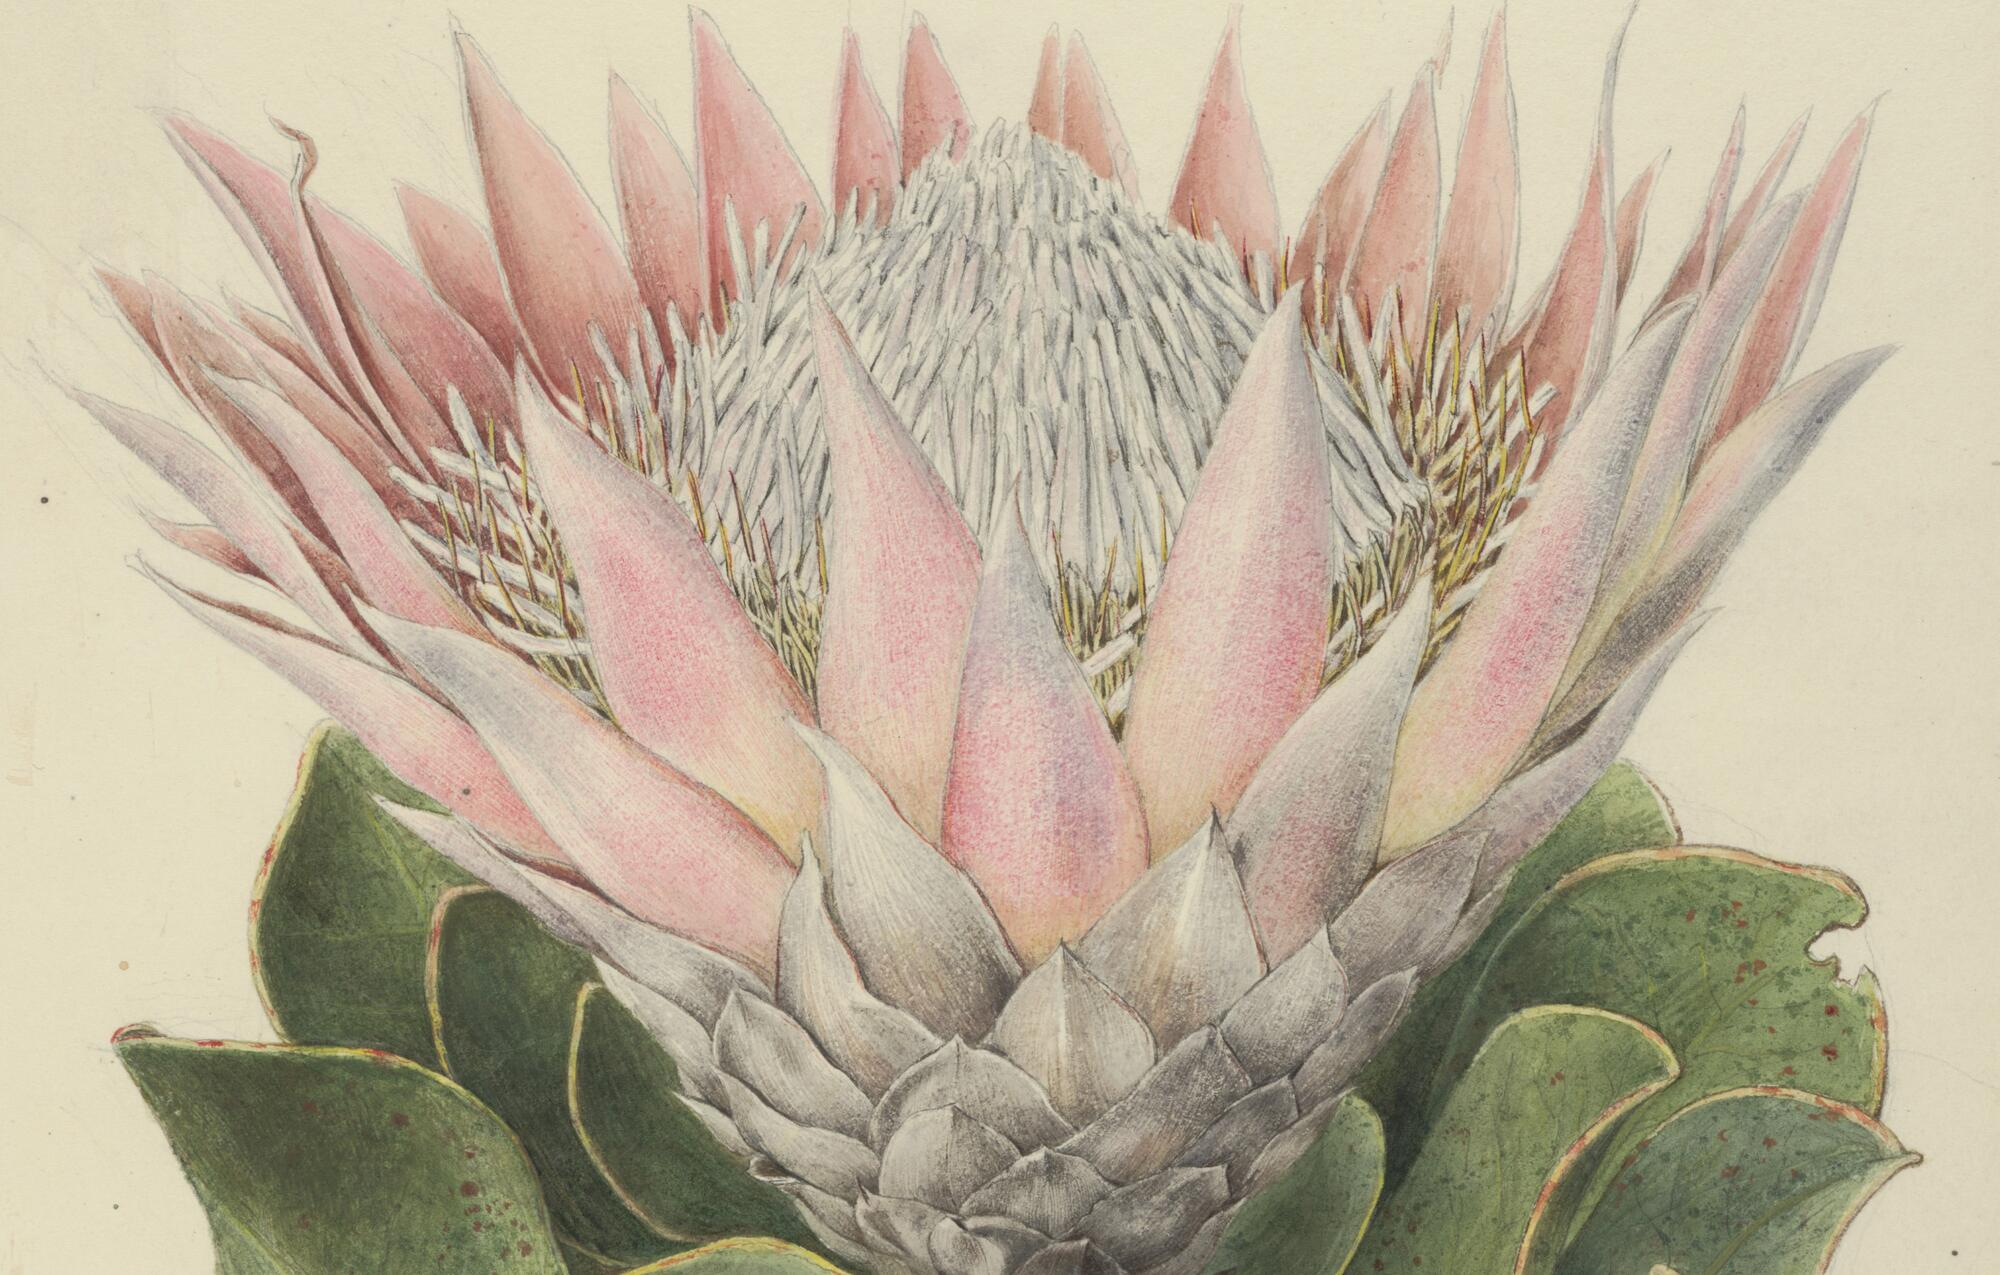 The king protea (Protea cyanroides) by A.T. Agate for the U.S. Exploring Expedition, (1838-1842).  (GH)